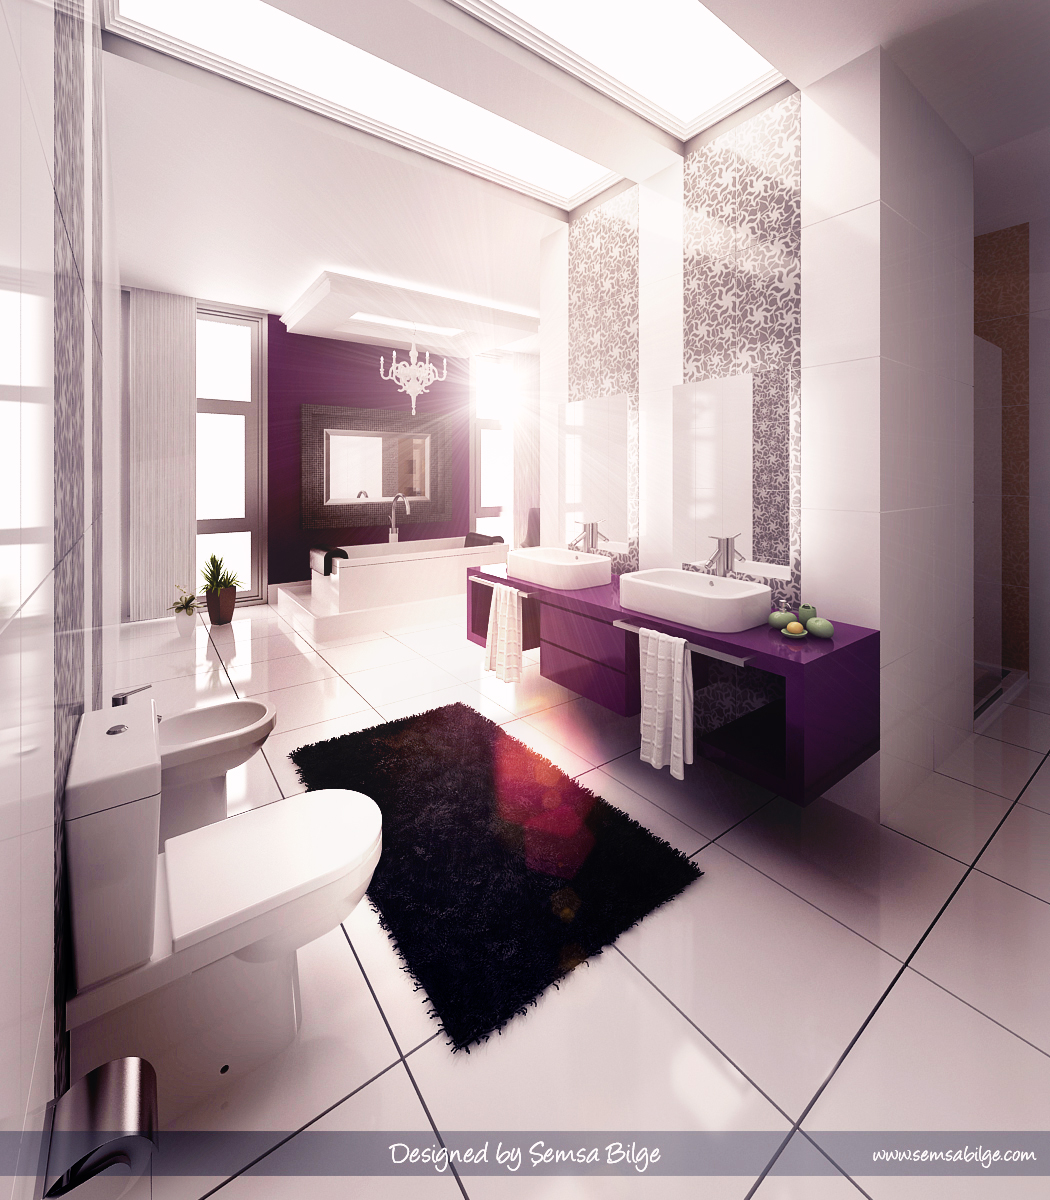 Beautiful bathroom designs ideas interior design interior decorating ideas interior design - Modern bathroom decorating ideas ...